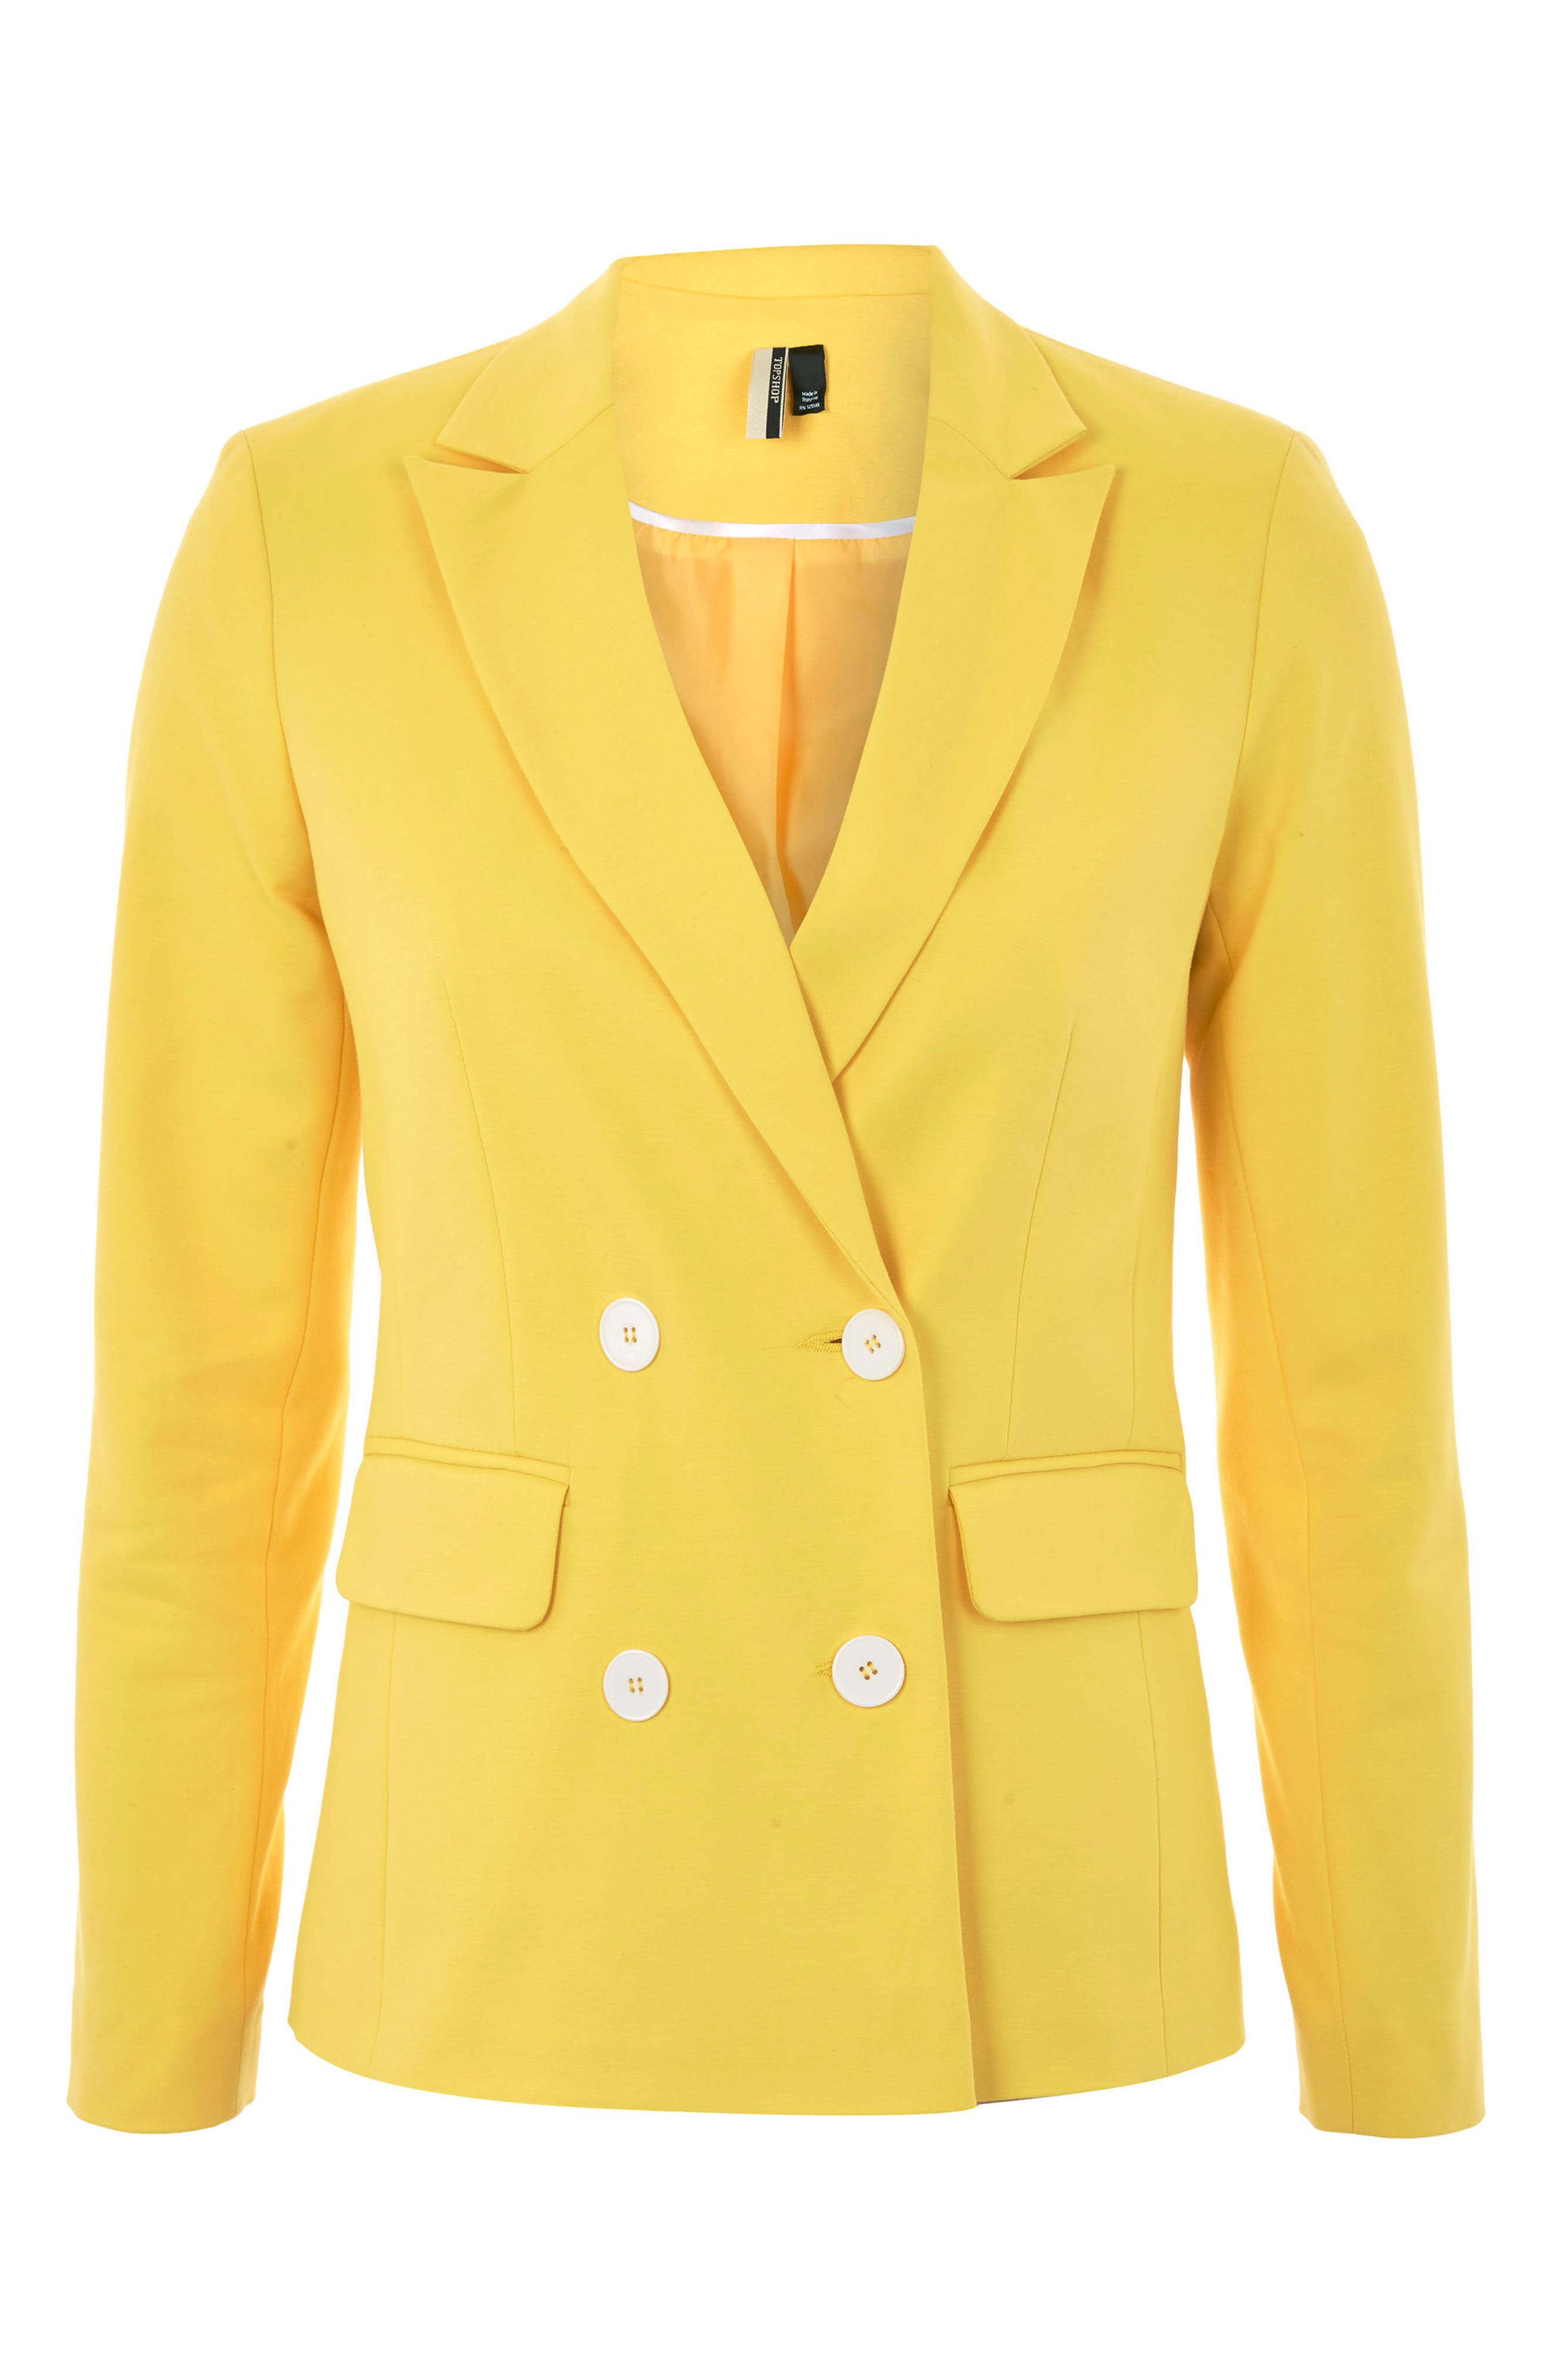 Milly Double Breasted Suit Jacket,                             Alternate thumbnail 3, color,                             700